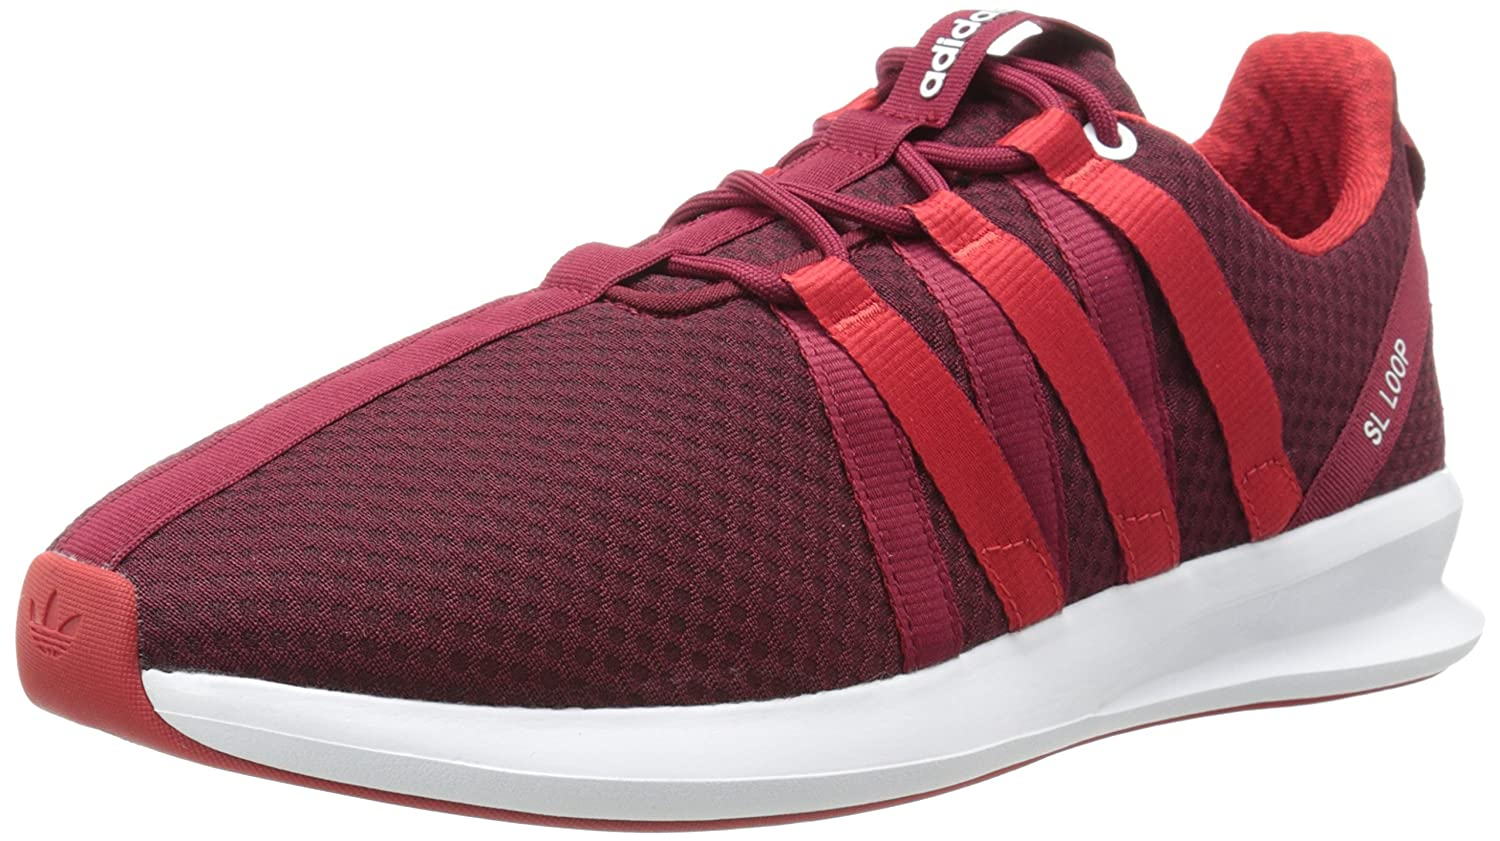 Adidas Originals Men's SL Loop Lifestyle Racer Turnschuhe, Collegiate Burgundy Light Scarlet Running Weiß, 11 M US